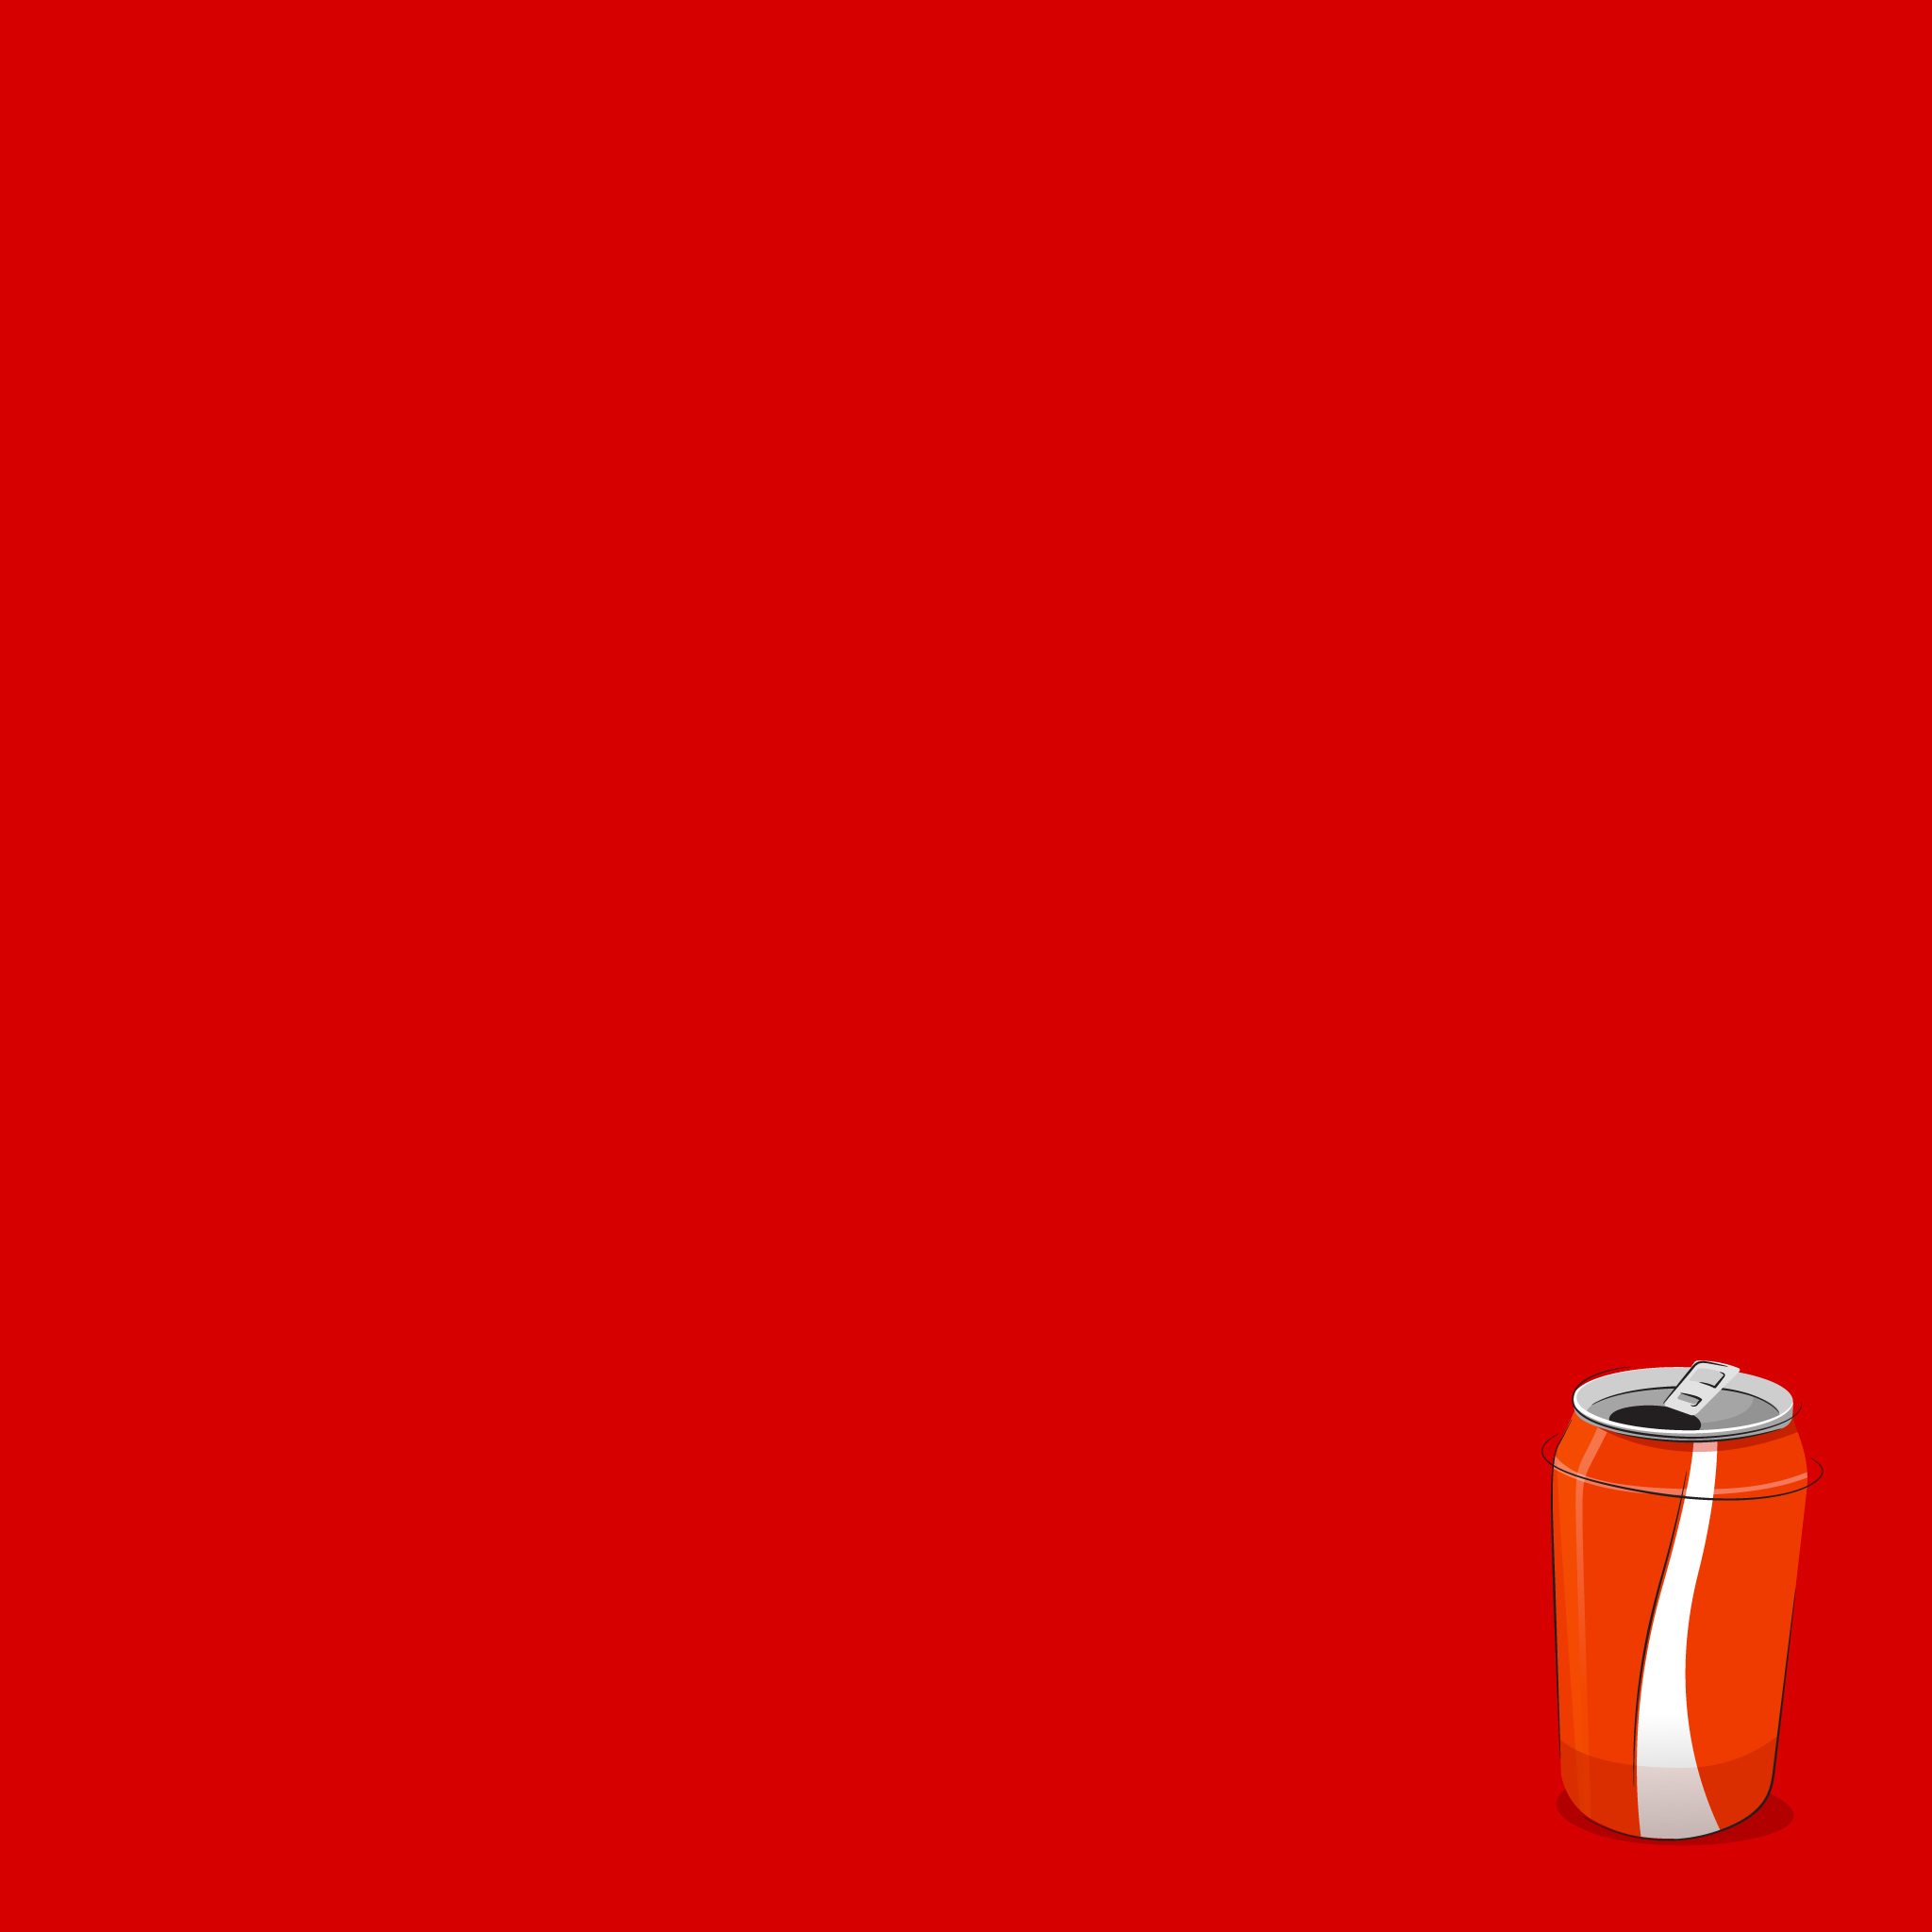 Coke Can 3Wallpapers iPad Retina Coke Can   iPad Retina